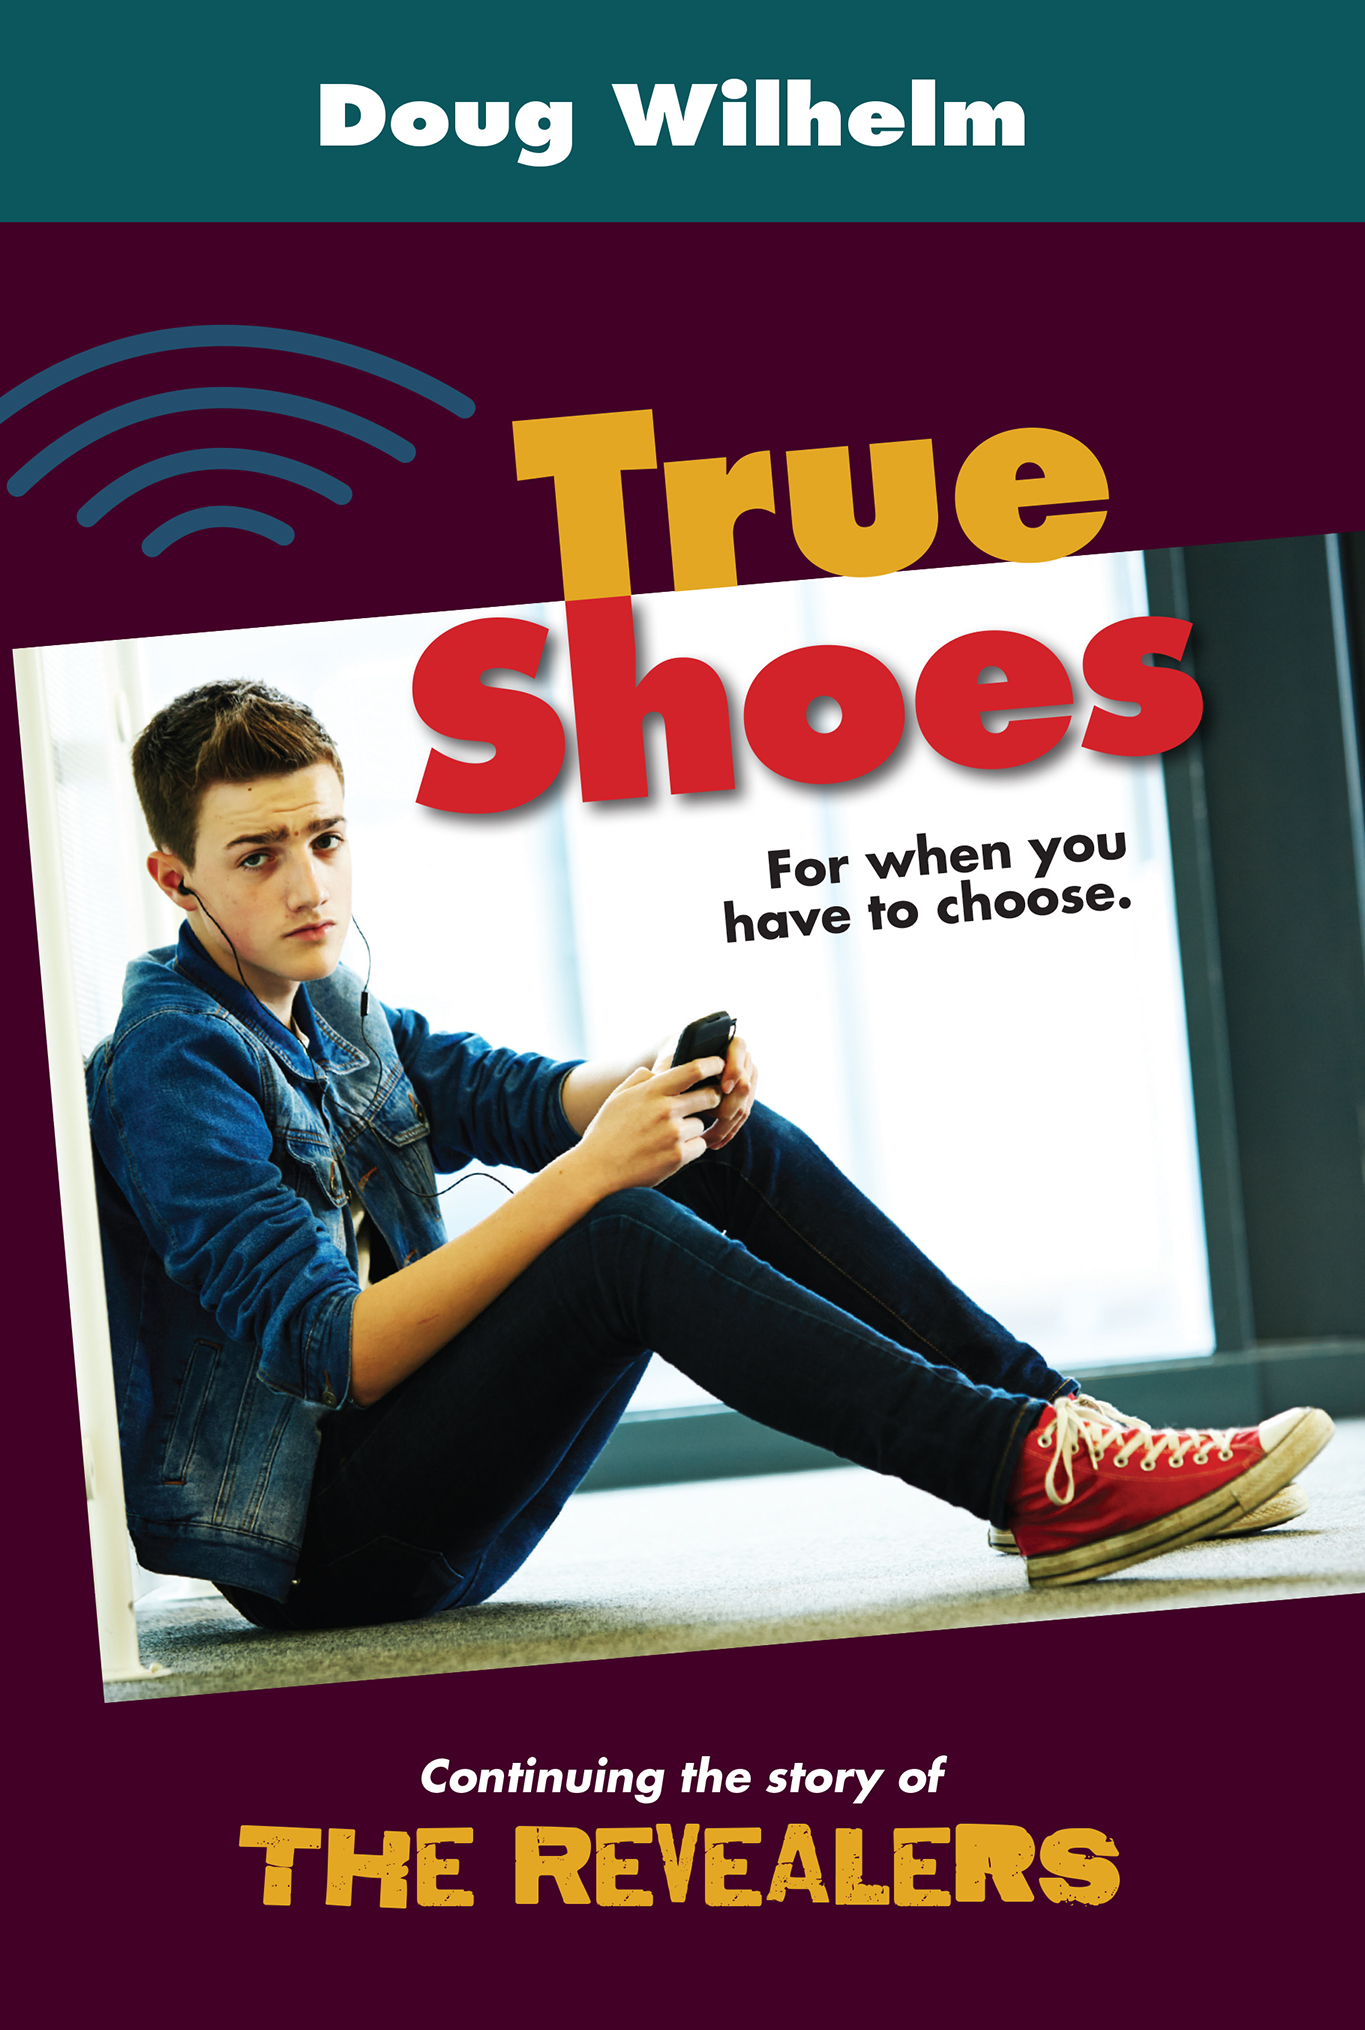 True Shoes cover 6-18-2013